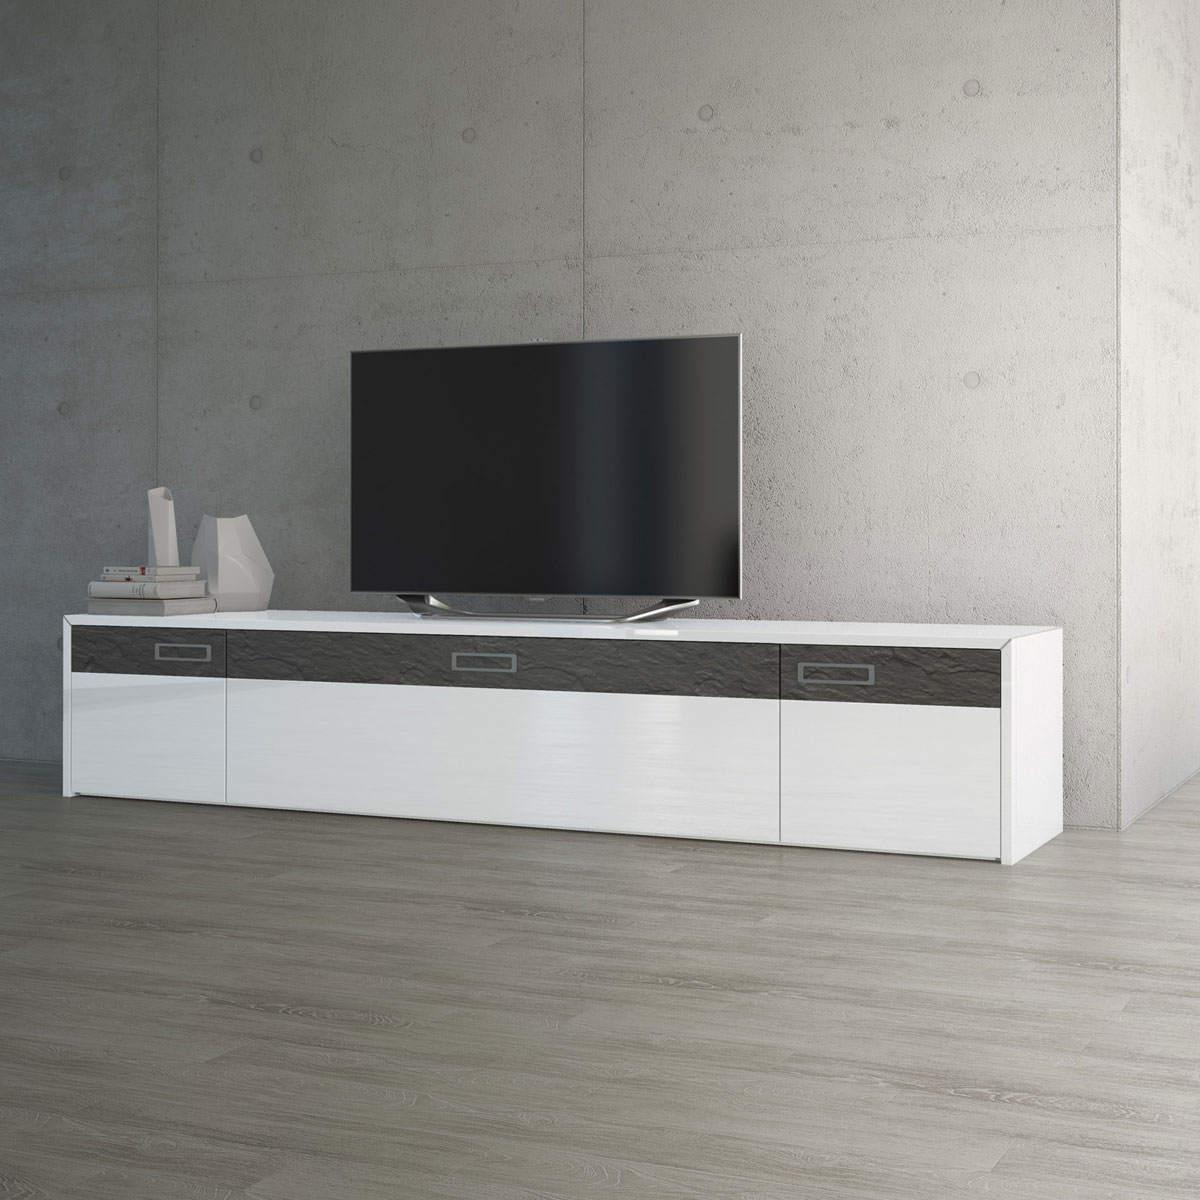 tv wandhalterung archive tv m bel und hifi m bel guide. Black Bedroom Furniture Sets. Home Design Ideas